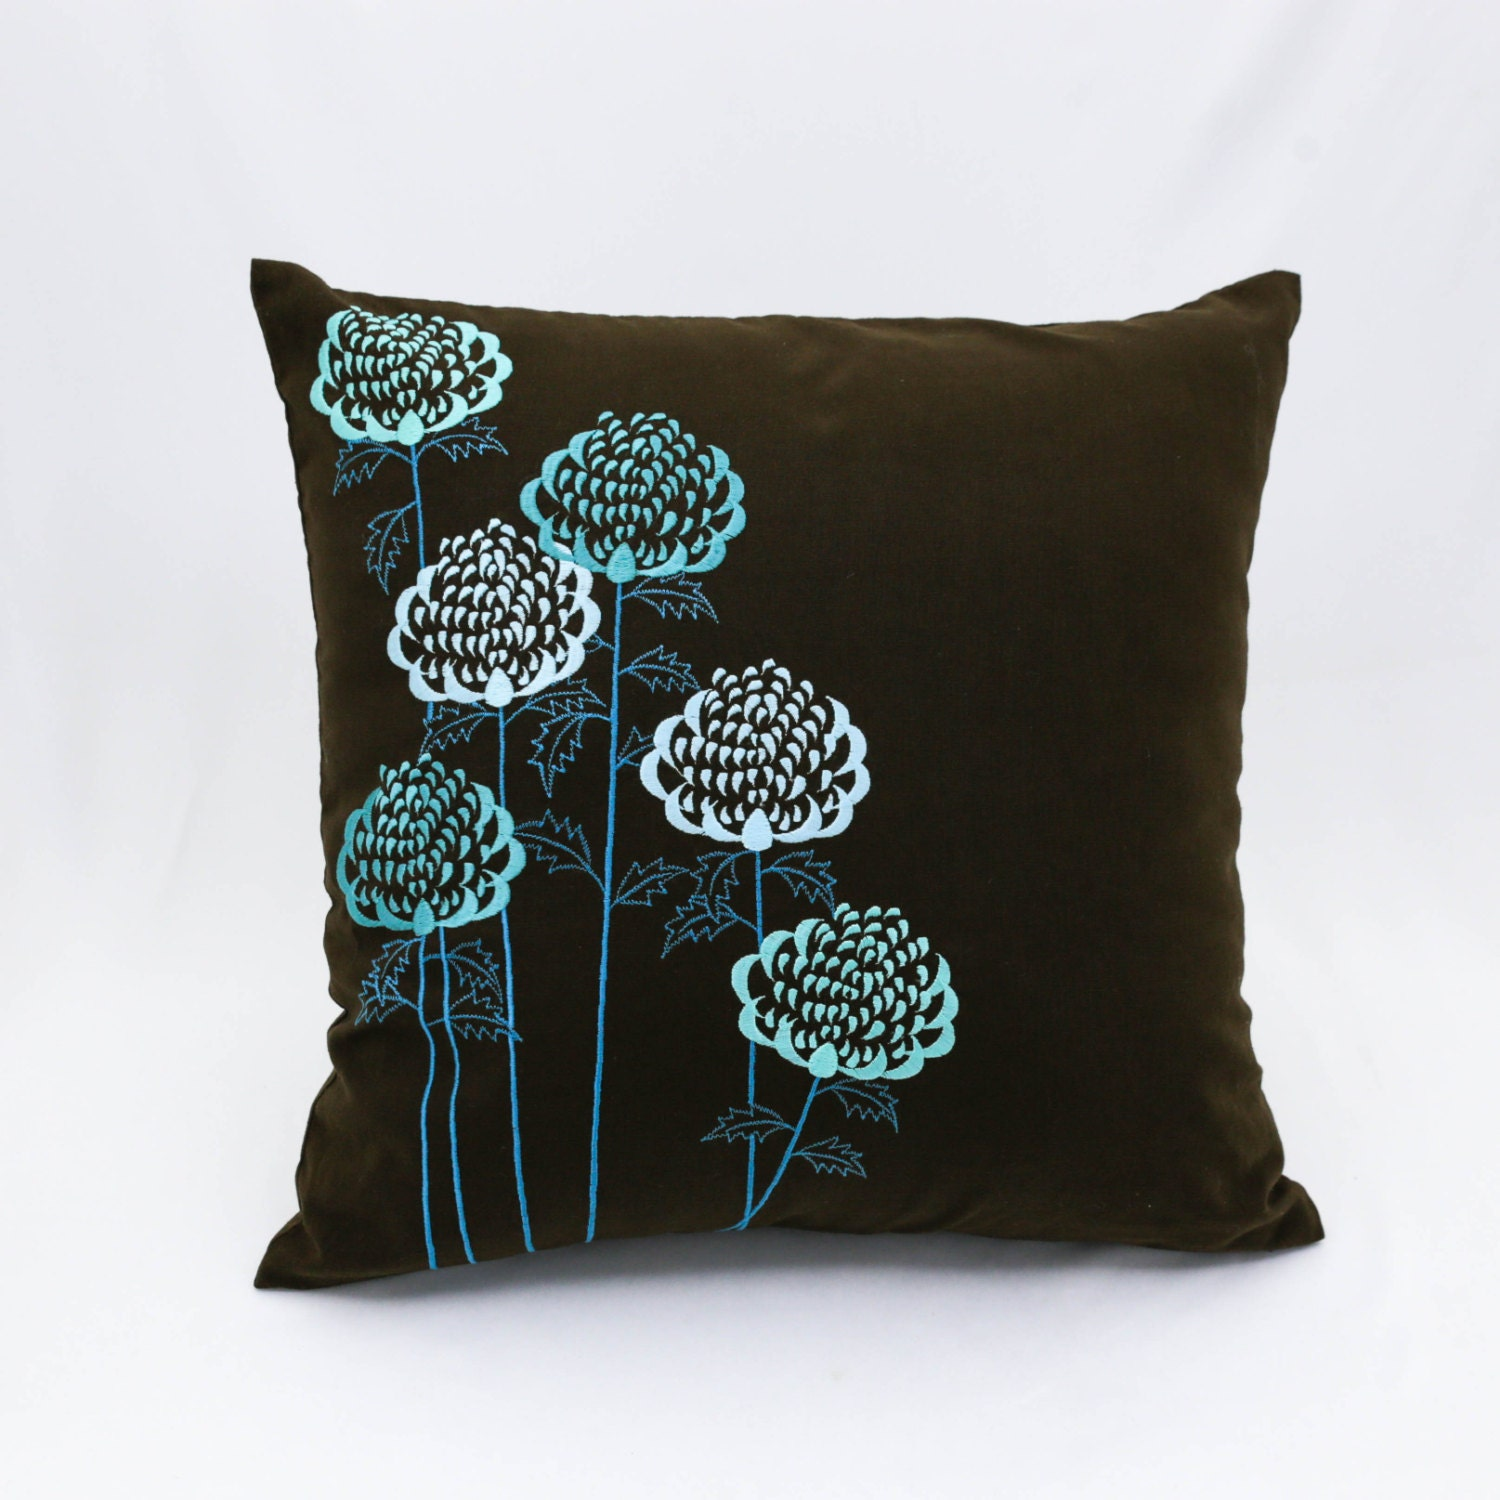 Decorative Pillows For Dark Brown Couch : Teal Throw Pillow Cover Teal floral embroidery on Dark Brown